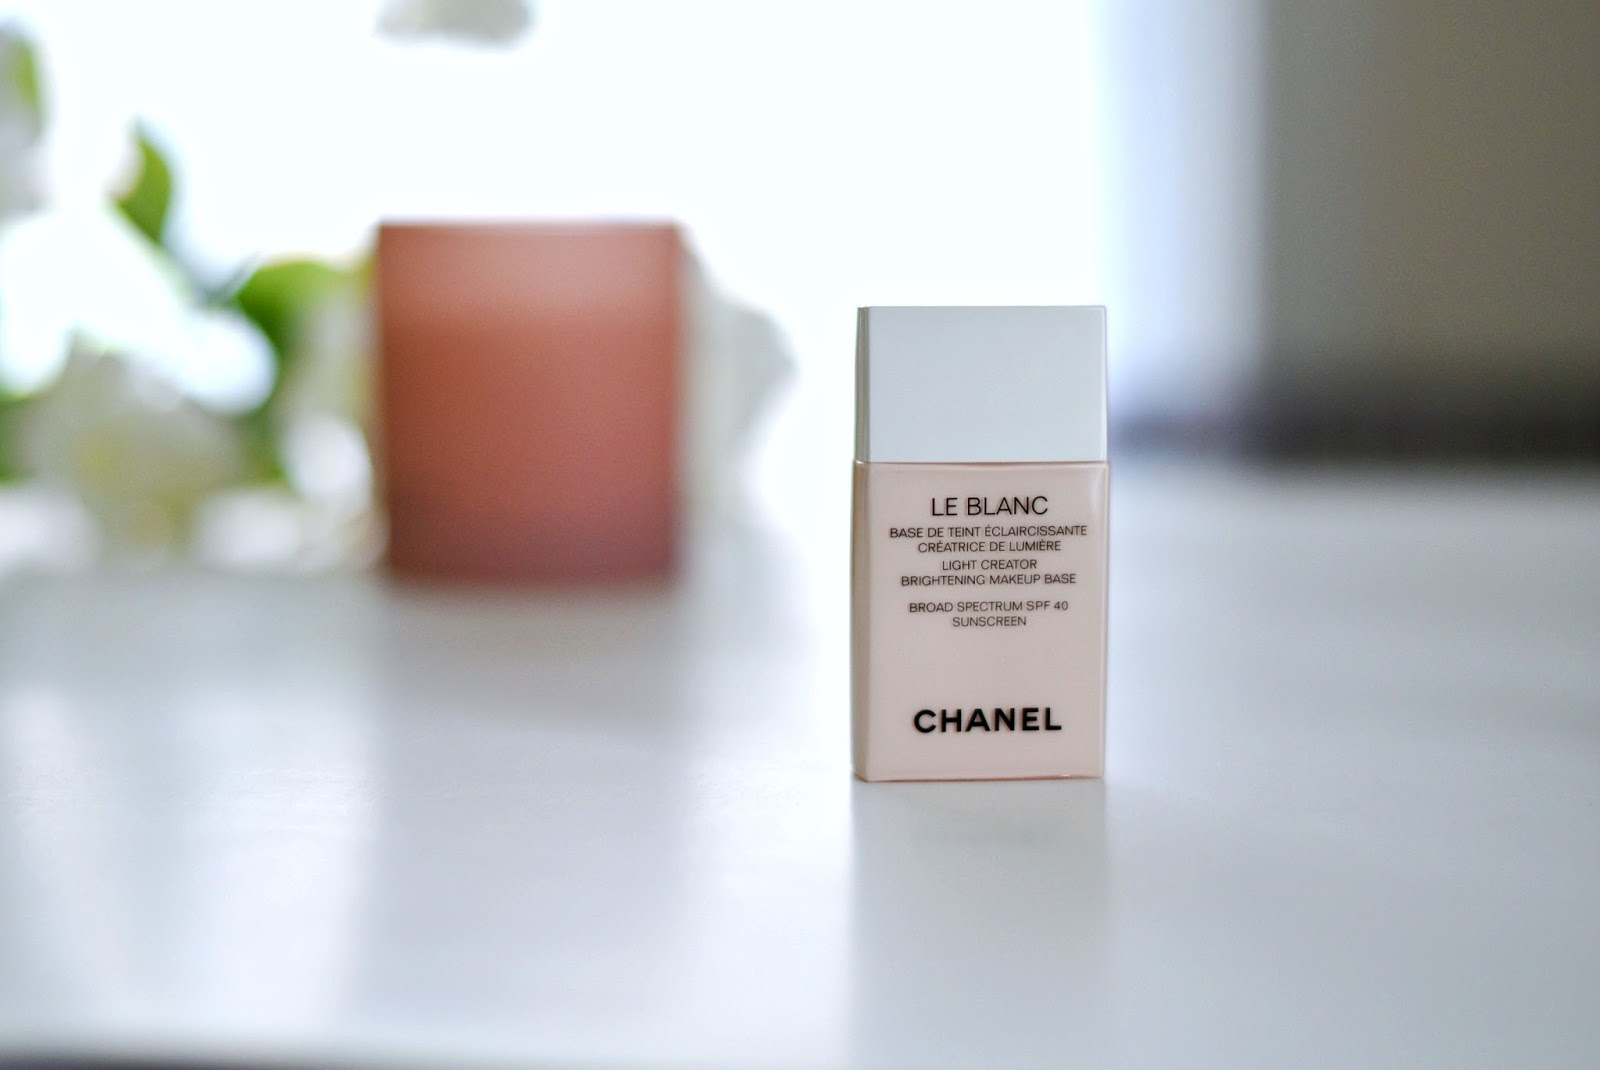 on Nnasstyleblog, review of Chanel Le Blanc Brightening makeup base review